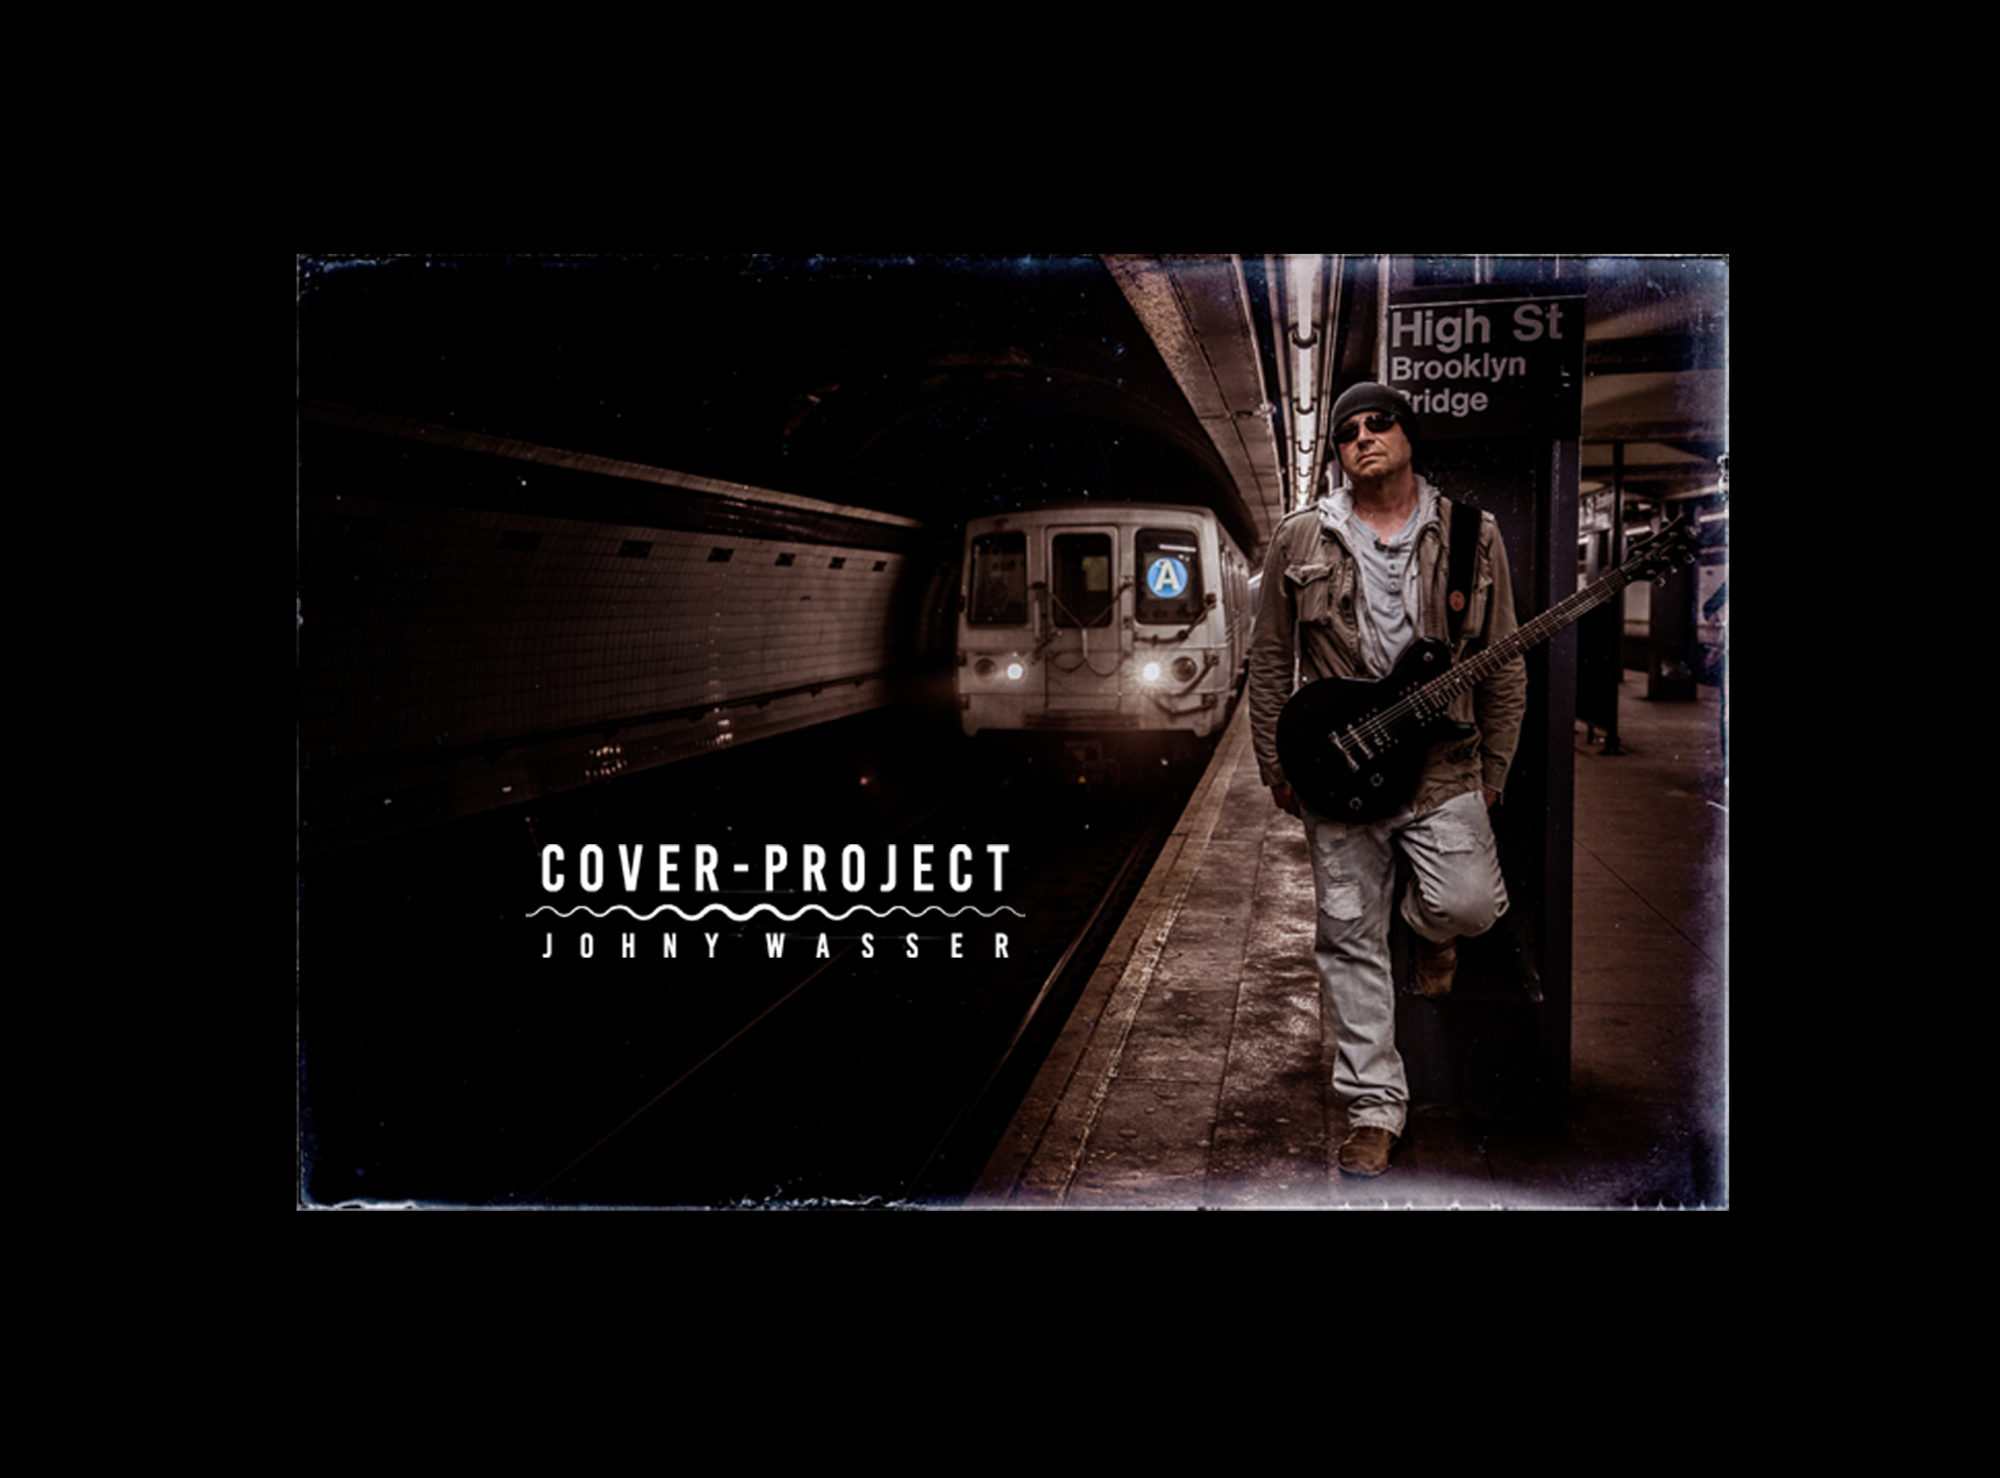 Cover-Project.com